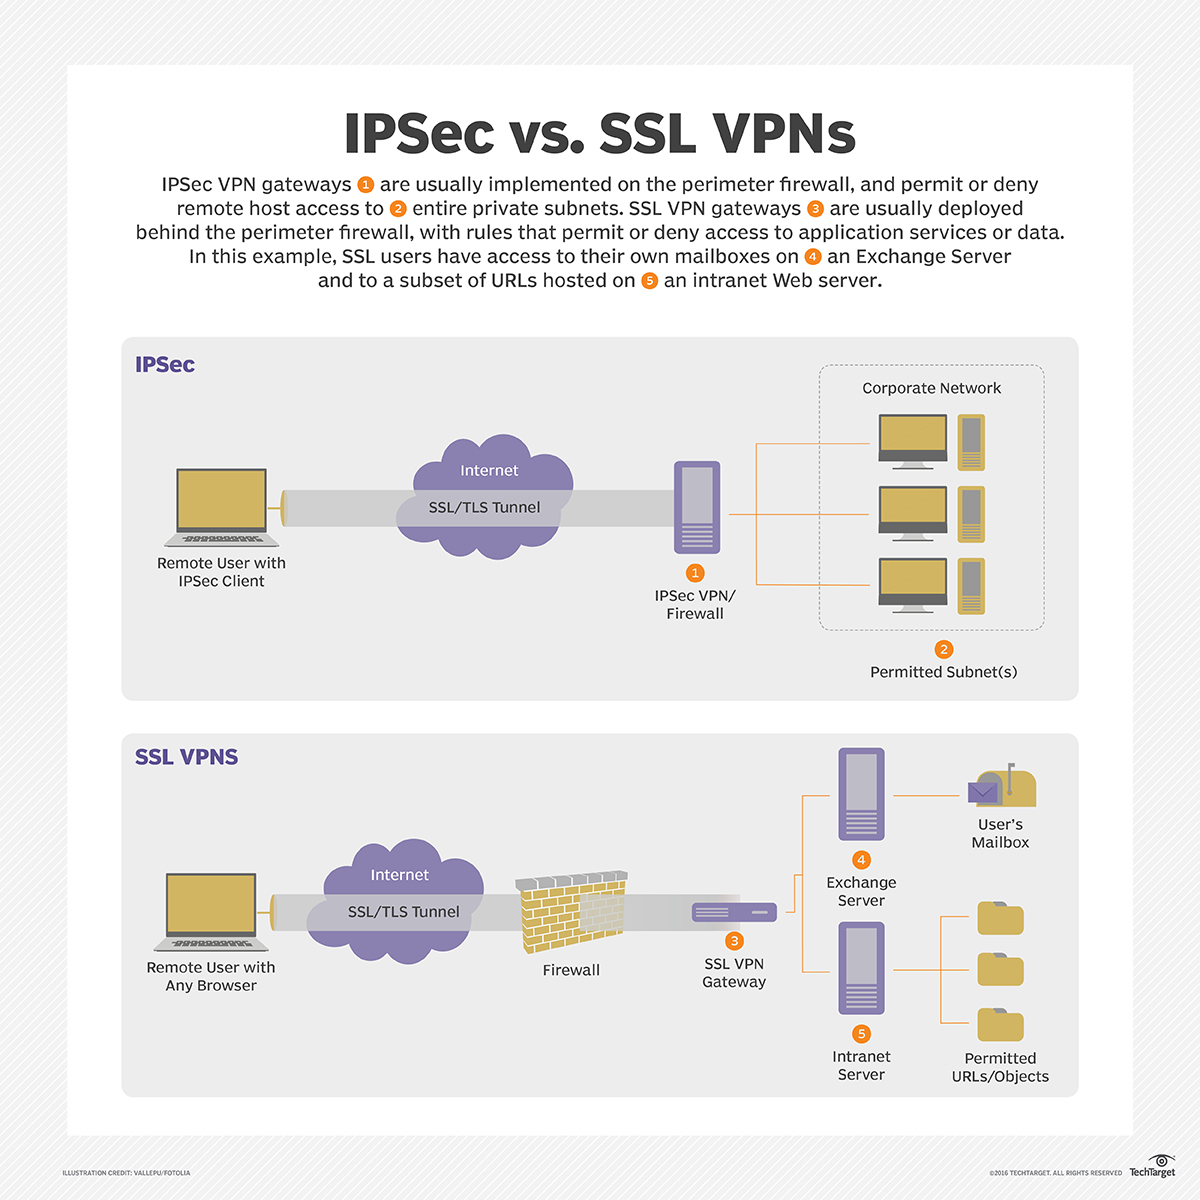 What is SSL VPN (Secure Sockets Layer virtual private network